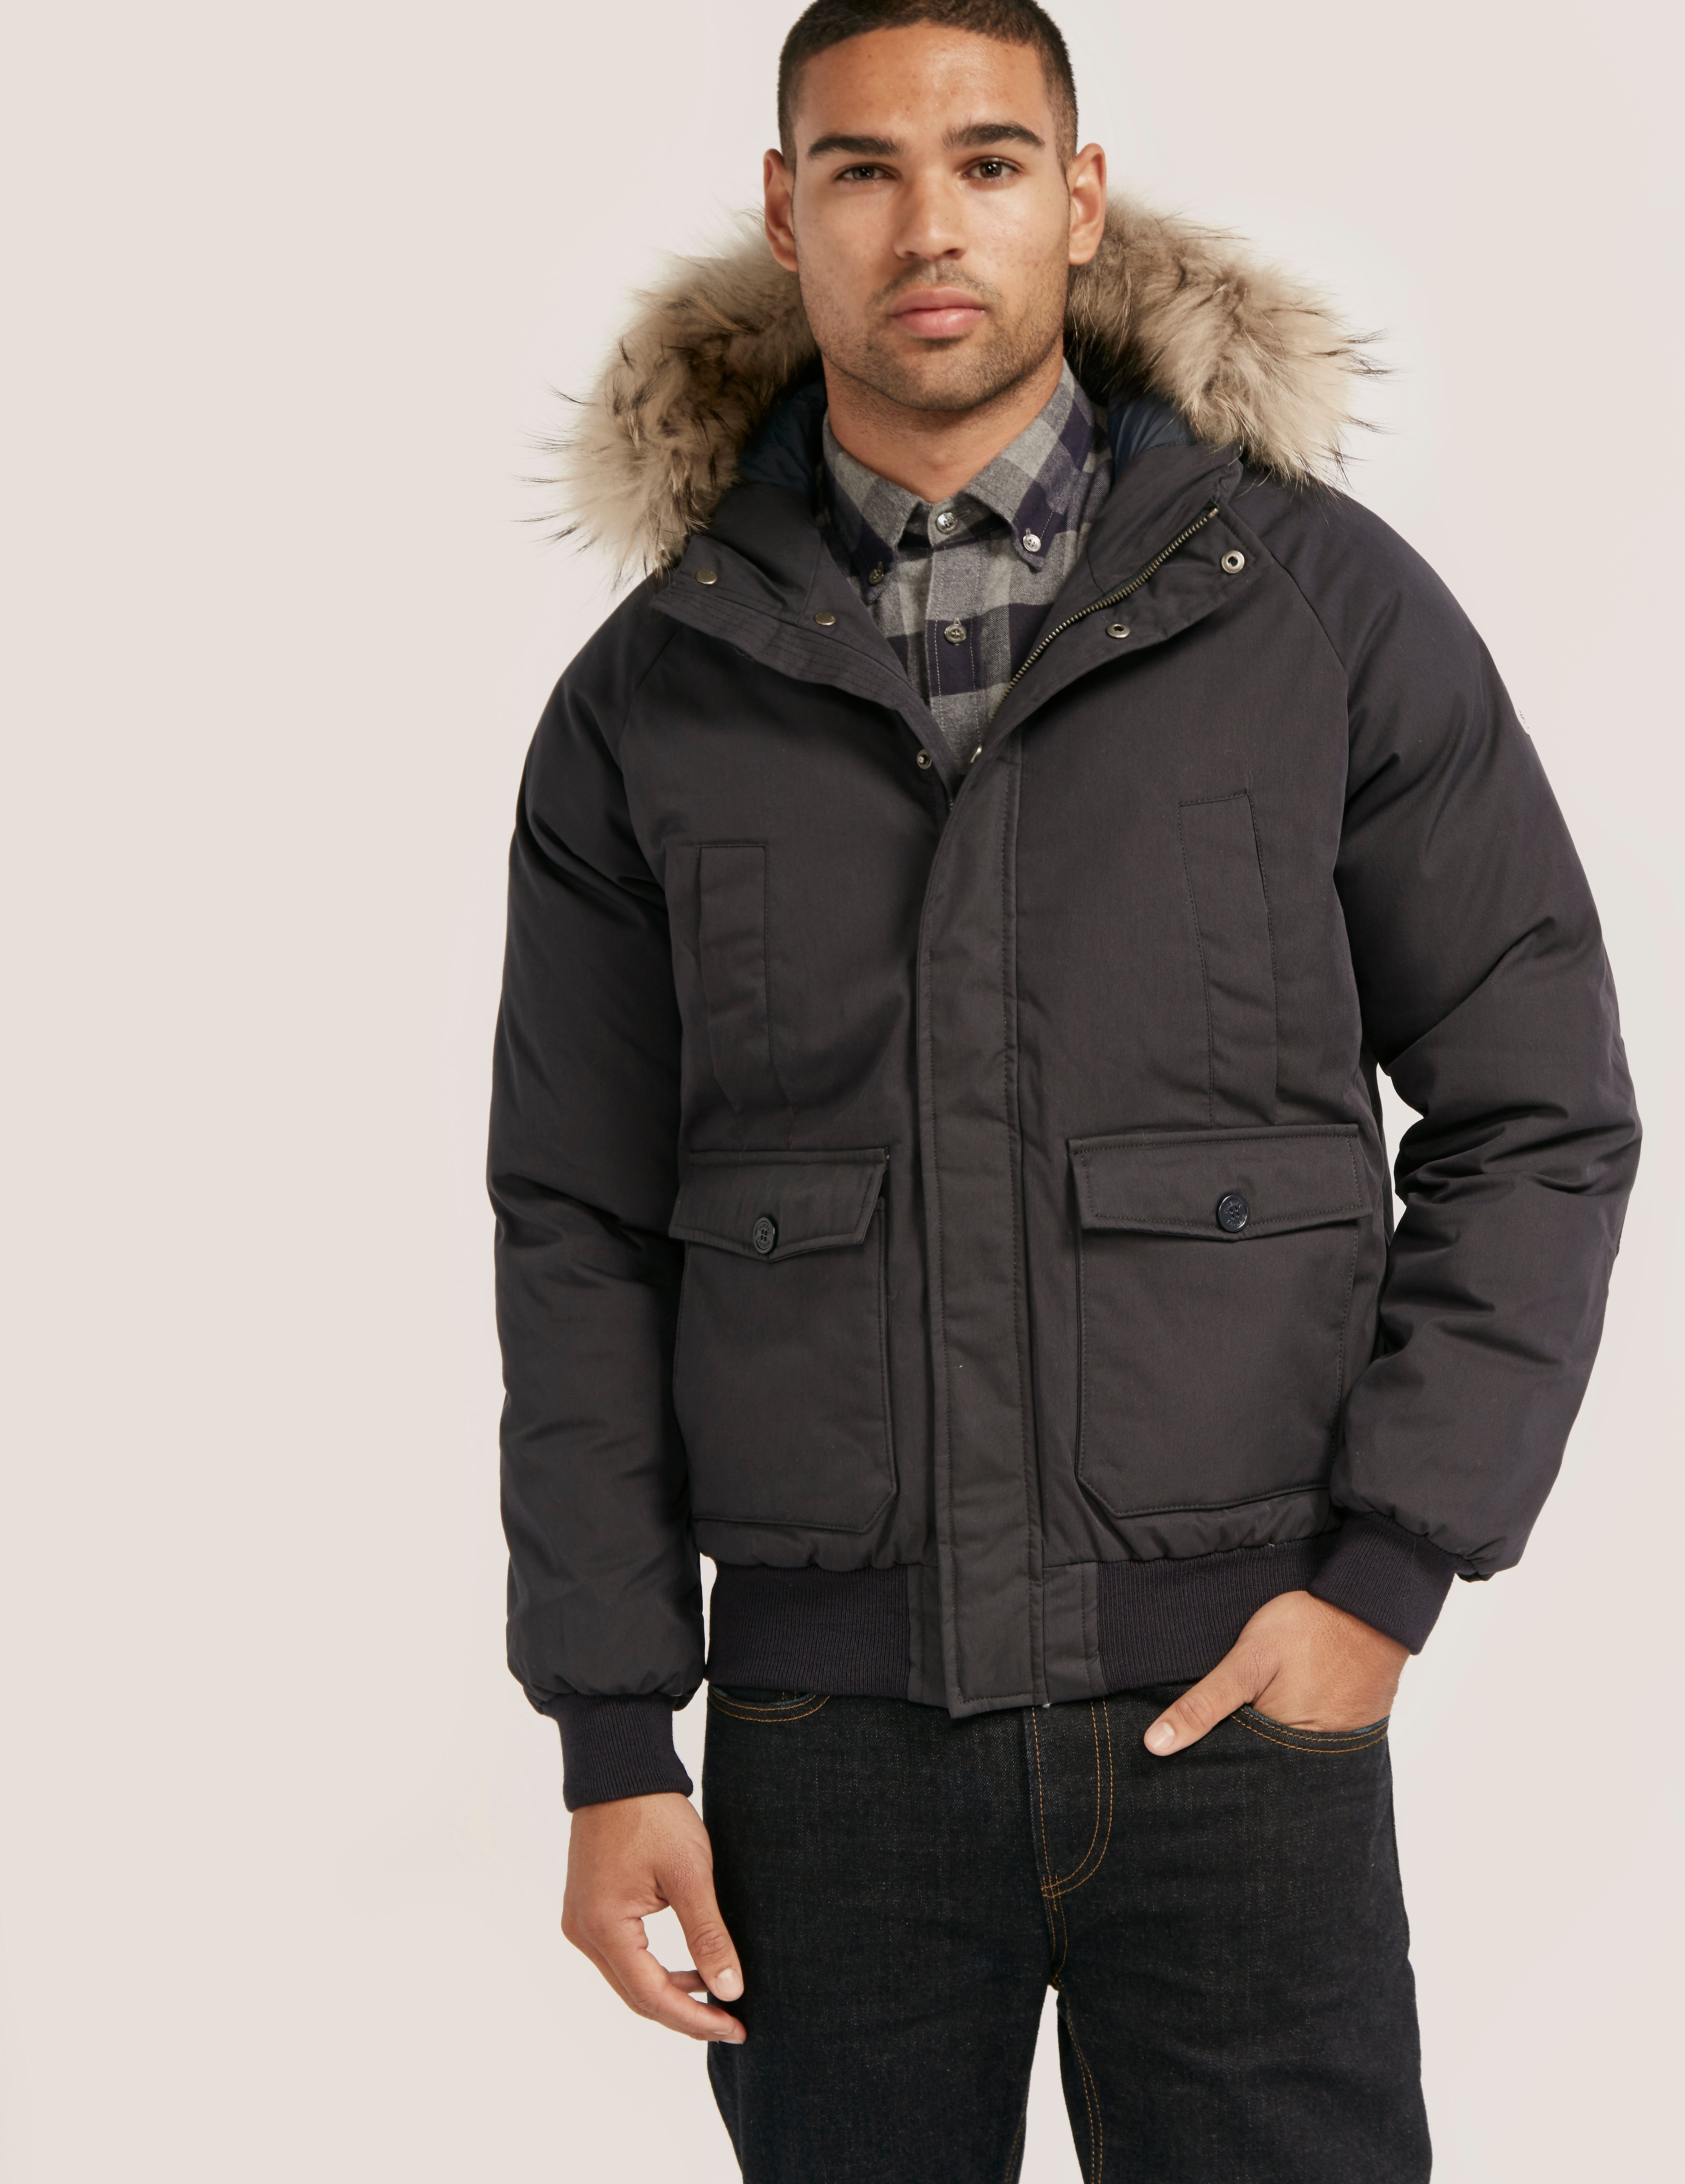 Buy Cheap Mistral Jacket Compare Cycling Prices For Best